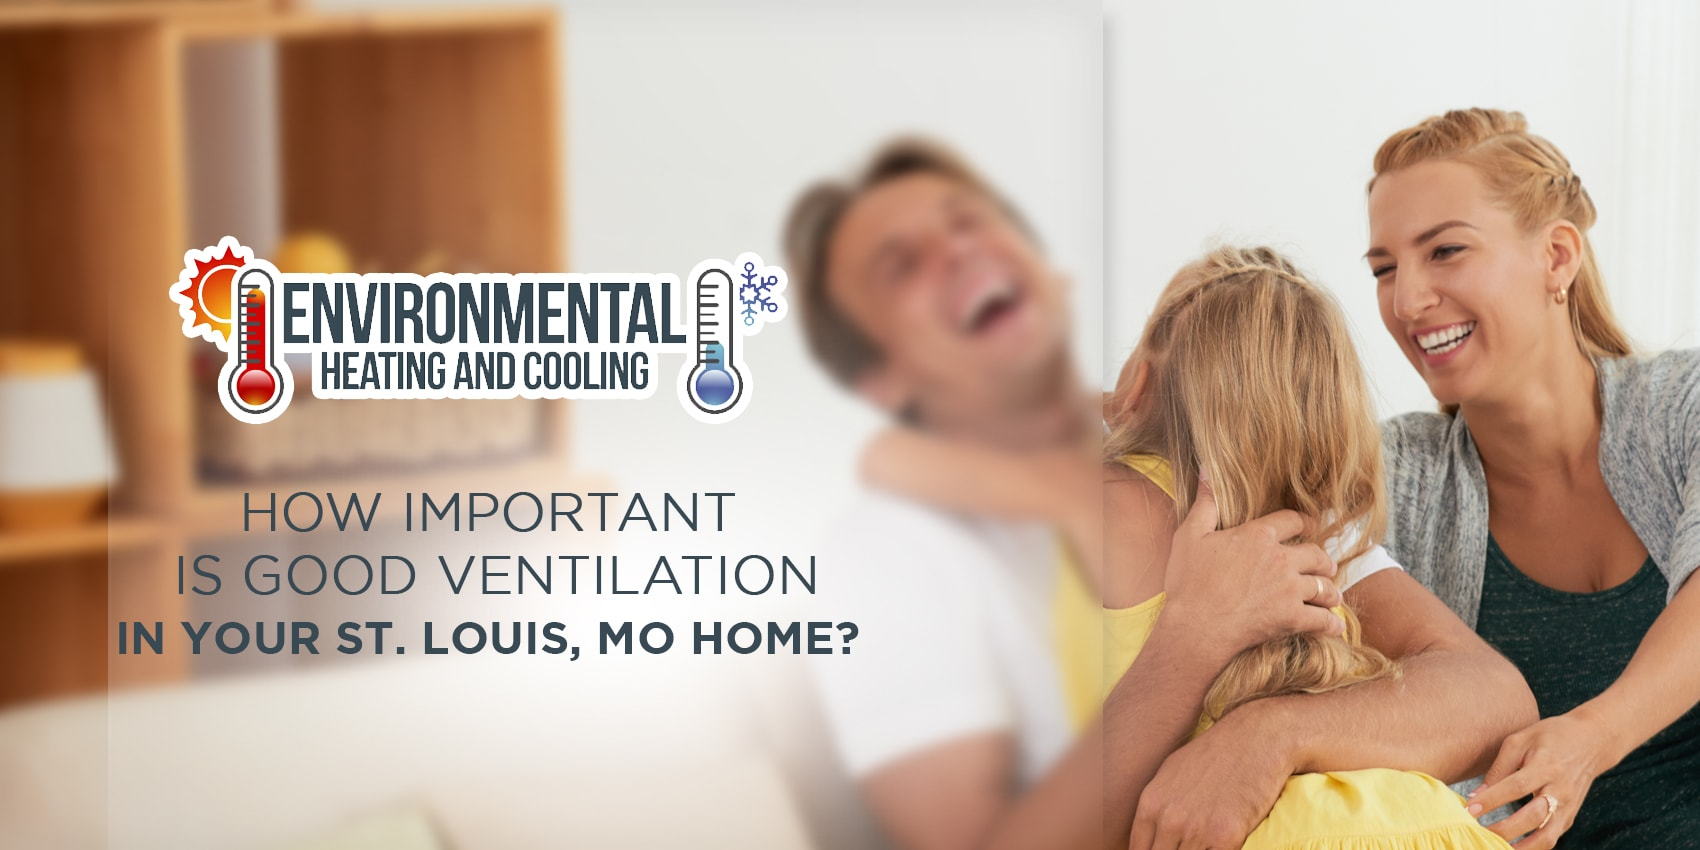 How Important is Good Ventilation in Your St. Louis, MO Home?